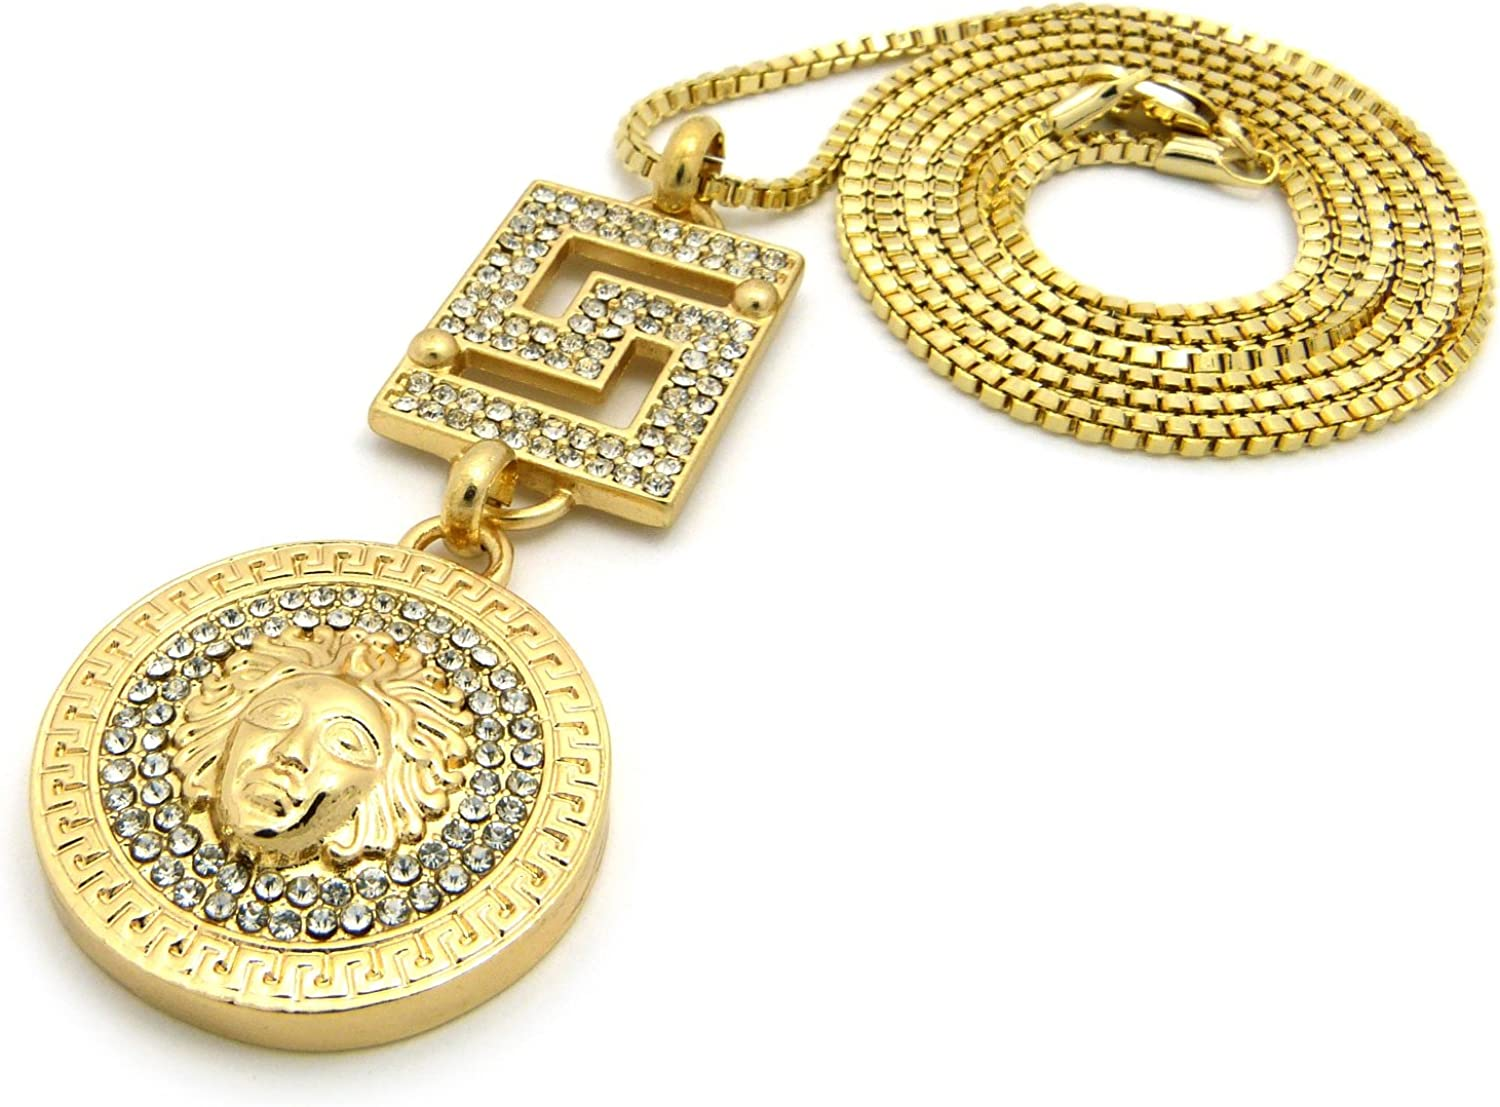 New Iced Out Medusa /& Square Pendant /&2mm//30 Box Chain Hip Hop Necklace RC612G